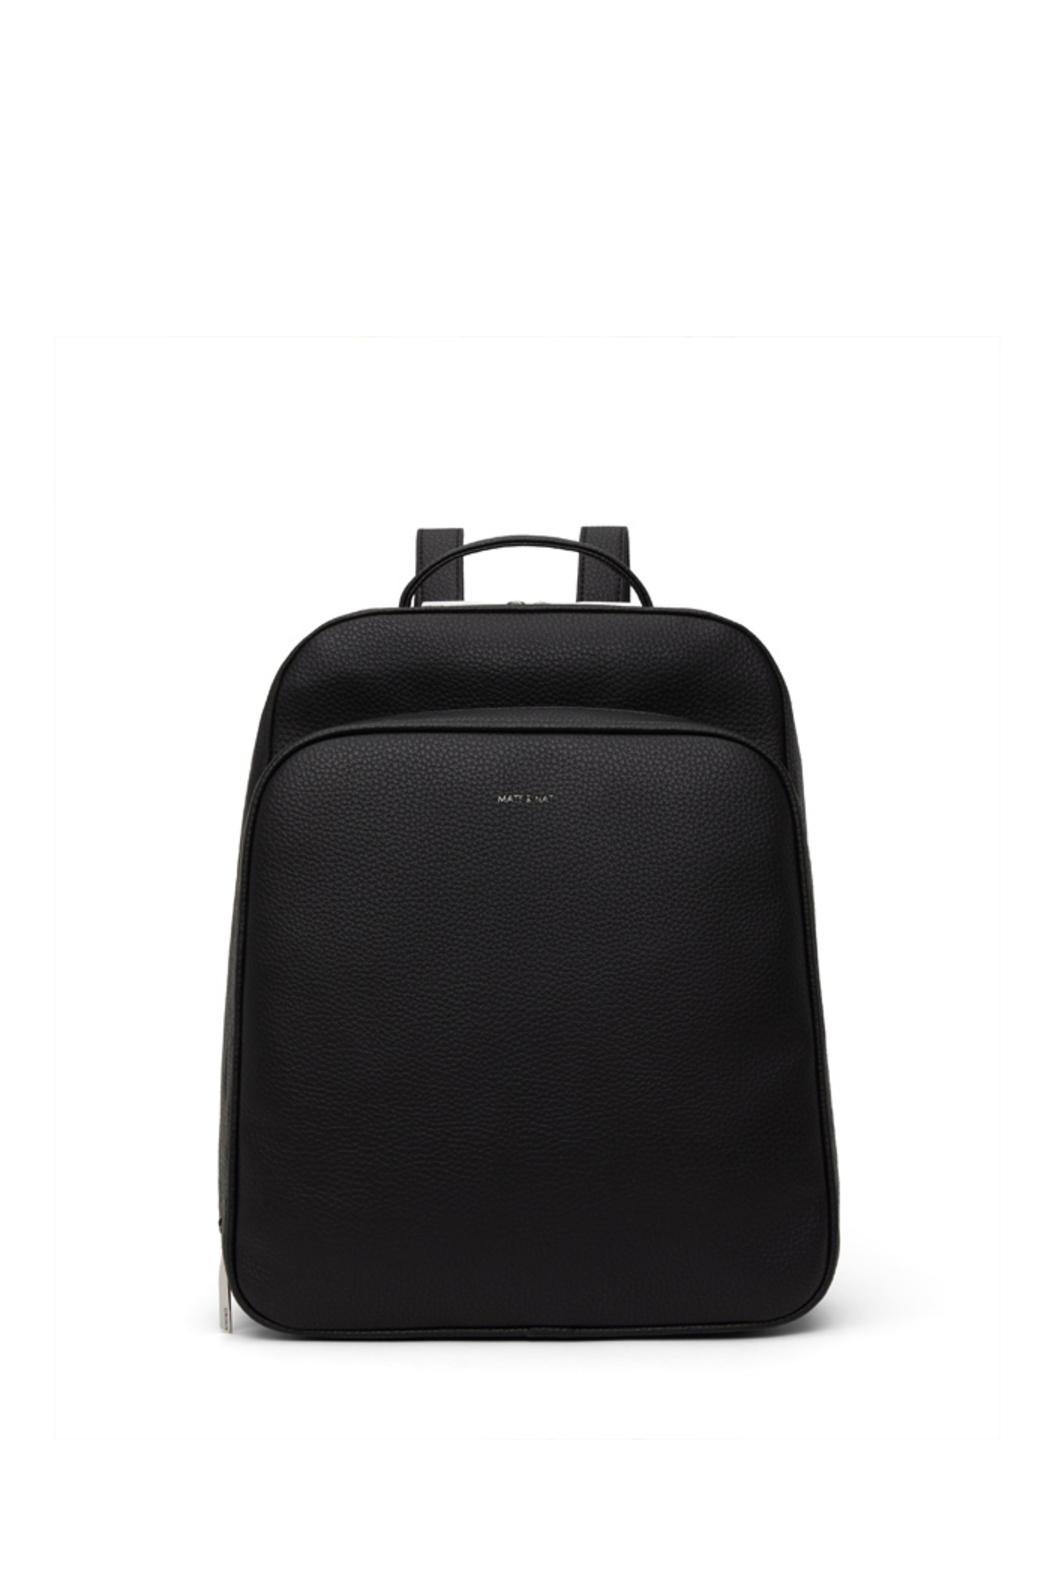 Matt & Nat Nava Purity Backpack - Front Cropped Image